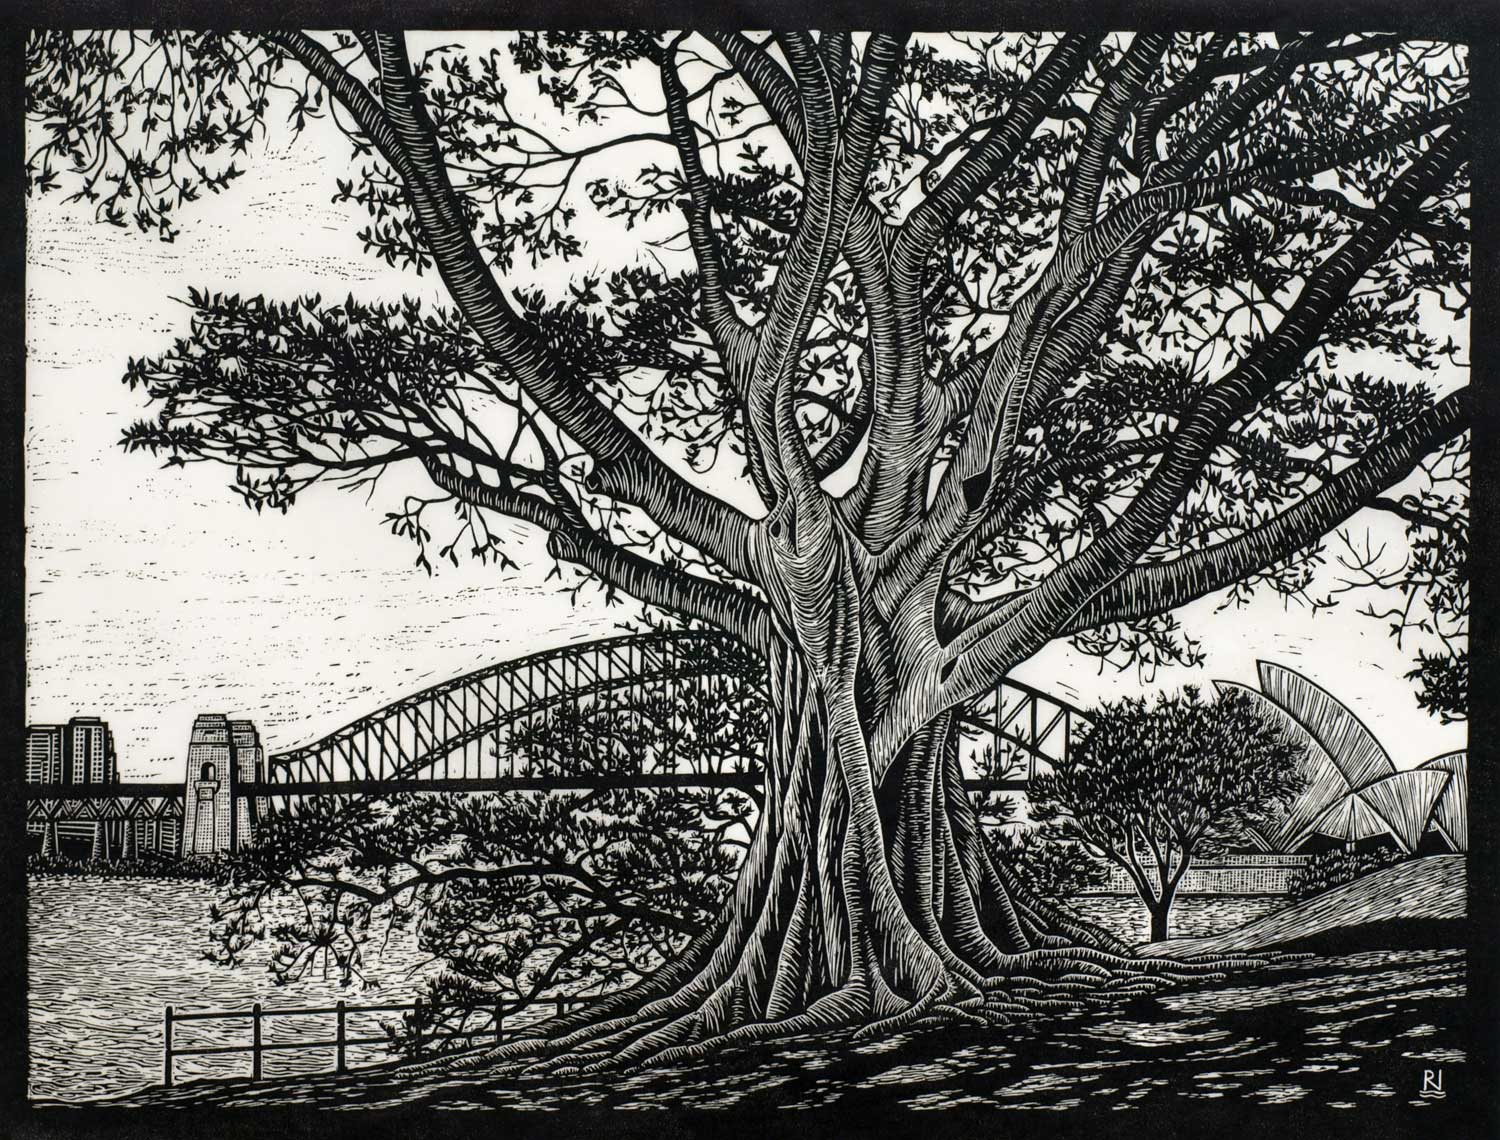 SYDNEY HARBOUR VIEW  42 X 55 CM, EDITION OF 50  LINOCUT ON HANDMADE JAPANESE PAPER  $1,000